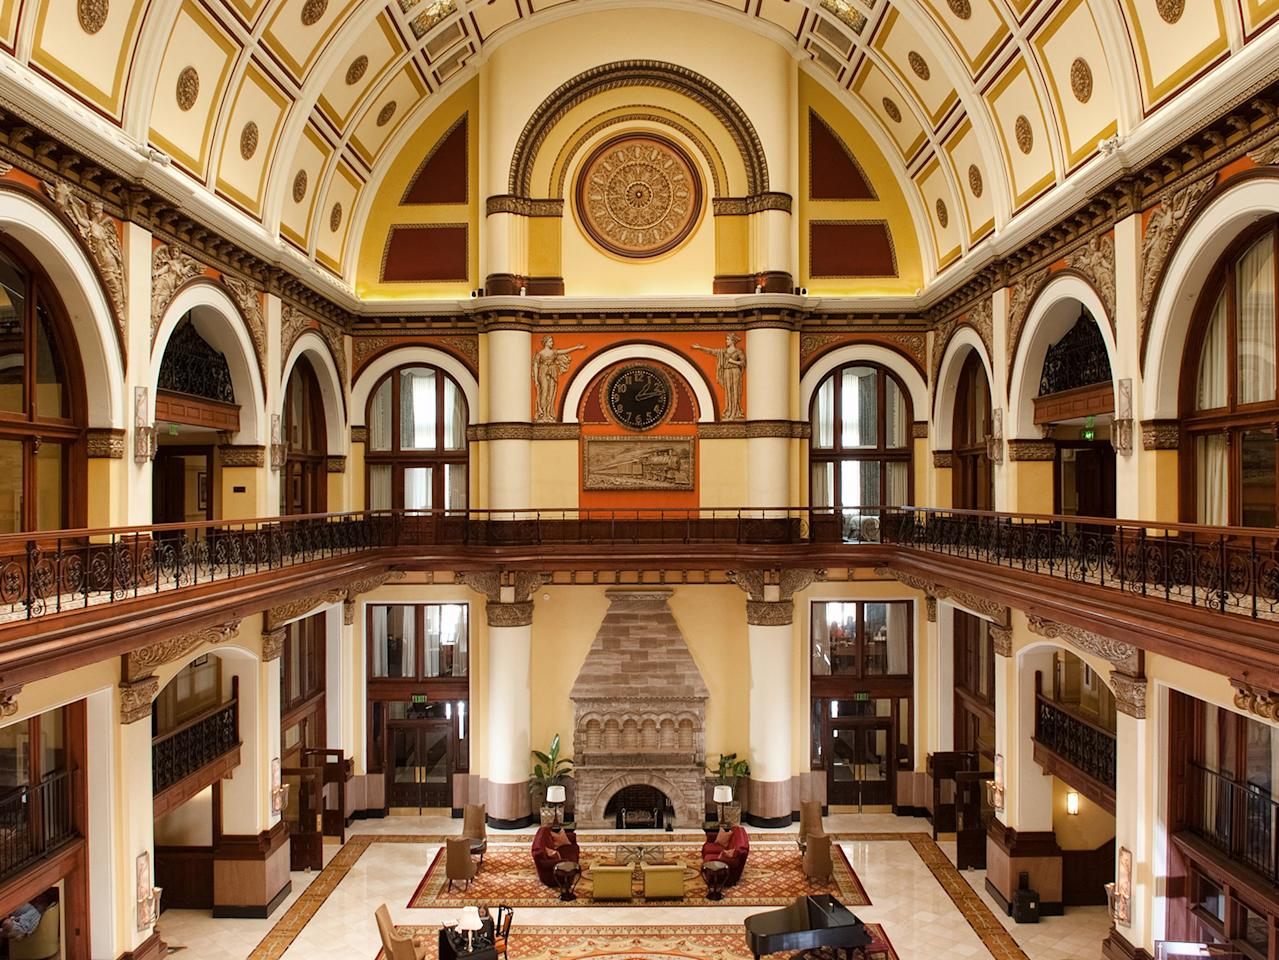 <p><strong>How did it strike you on arrival?</strong><br> Union Station, once Nashville's central train terminal, is one of the city's most recognizable buildings. The hotel that now fills the space has 65-foot vaulted lobby ceilings punctuated by century-old Tiffany-style stained glass.</p> <p><strong>What's the crowd like?</strong><br> It's easy to imagine all the guests during an earlier time were fresh off the train, hats in one hand, valises in the other. Nowadays, Union Station plays host to a wide range: tourists en route to Broadway, wedding parties attending a reception in the central atrium, and business types in town for a meeting.</p> <p><strong>Tell us about the rooms.</strong><br> A recent renovation means the rooms have more of a contemporary feel than the common areas would lead you to believe. Think playful accents like cowhide headboards and bold red pillows. Also, if you can, book an interior room with windows that open out into the atrium.</p> <p><strong>How about the little things, like minibar, or shower goodies. Any of that find that worth a mention?</strong><br> You'll no doubt try to check out with some of the bold, original art smuggled in your luggage.</p> <p><strong>What's the bathroom like?</strong><br> Spacious and standard with ROAM toiletries on hand.</p> <p><strong>Maybe the most important topic of all: Wi-Fi. What's the word?</strong><br> Wi-Fi starts at $9.95 a day and goes up in cost depending on how fast you want it.</p> <p><strong>What's the story with room service?</strong><br> Room service from the on-site restaurant Carter's is available throughout the day, ending between 11 p.m. and midnight, depending on whether's it's a weekday or weekend. Entrées run from $10 to $32, and there are plenty of shareable plate options, too.</p> <p><strong>Anything we forgot to ask about?</strong><br> Union Station hosts a live music series Riffs on the Rails, every other Thursday, featuring both local and national singers and songwriters.</p> <p><strong>Bottom line: Is it worth it?</strong><br> If you can get this hotel in the neighborhood of $250, it's worth it, but unfortunately, due to Nashville's high demand, rooms are more often in the $400 to $500 price range.</p>